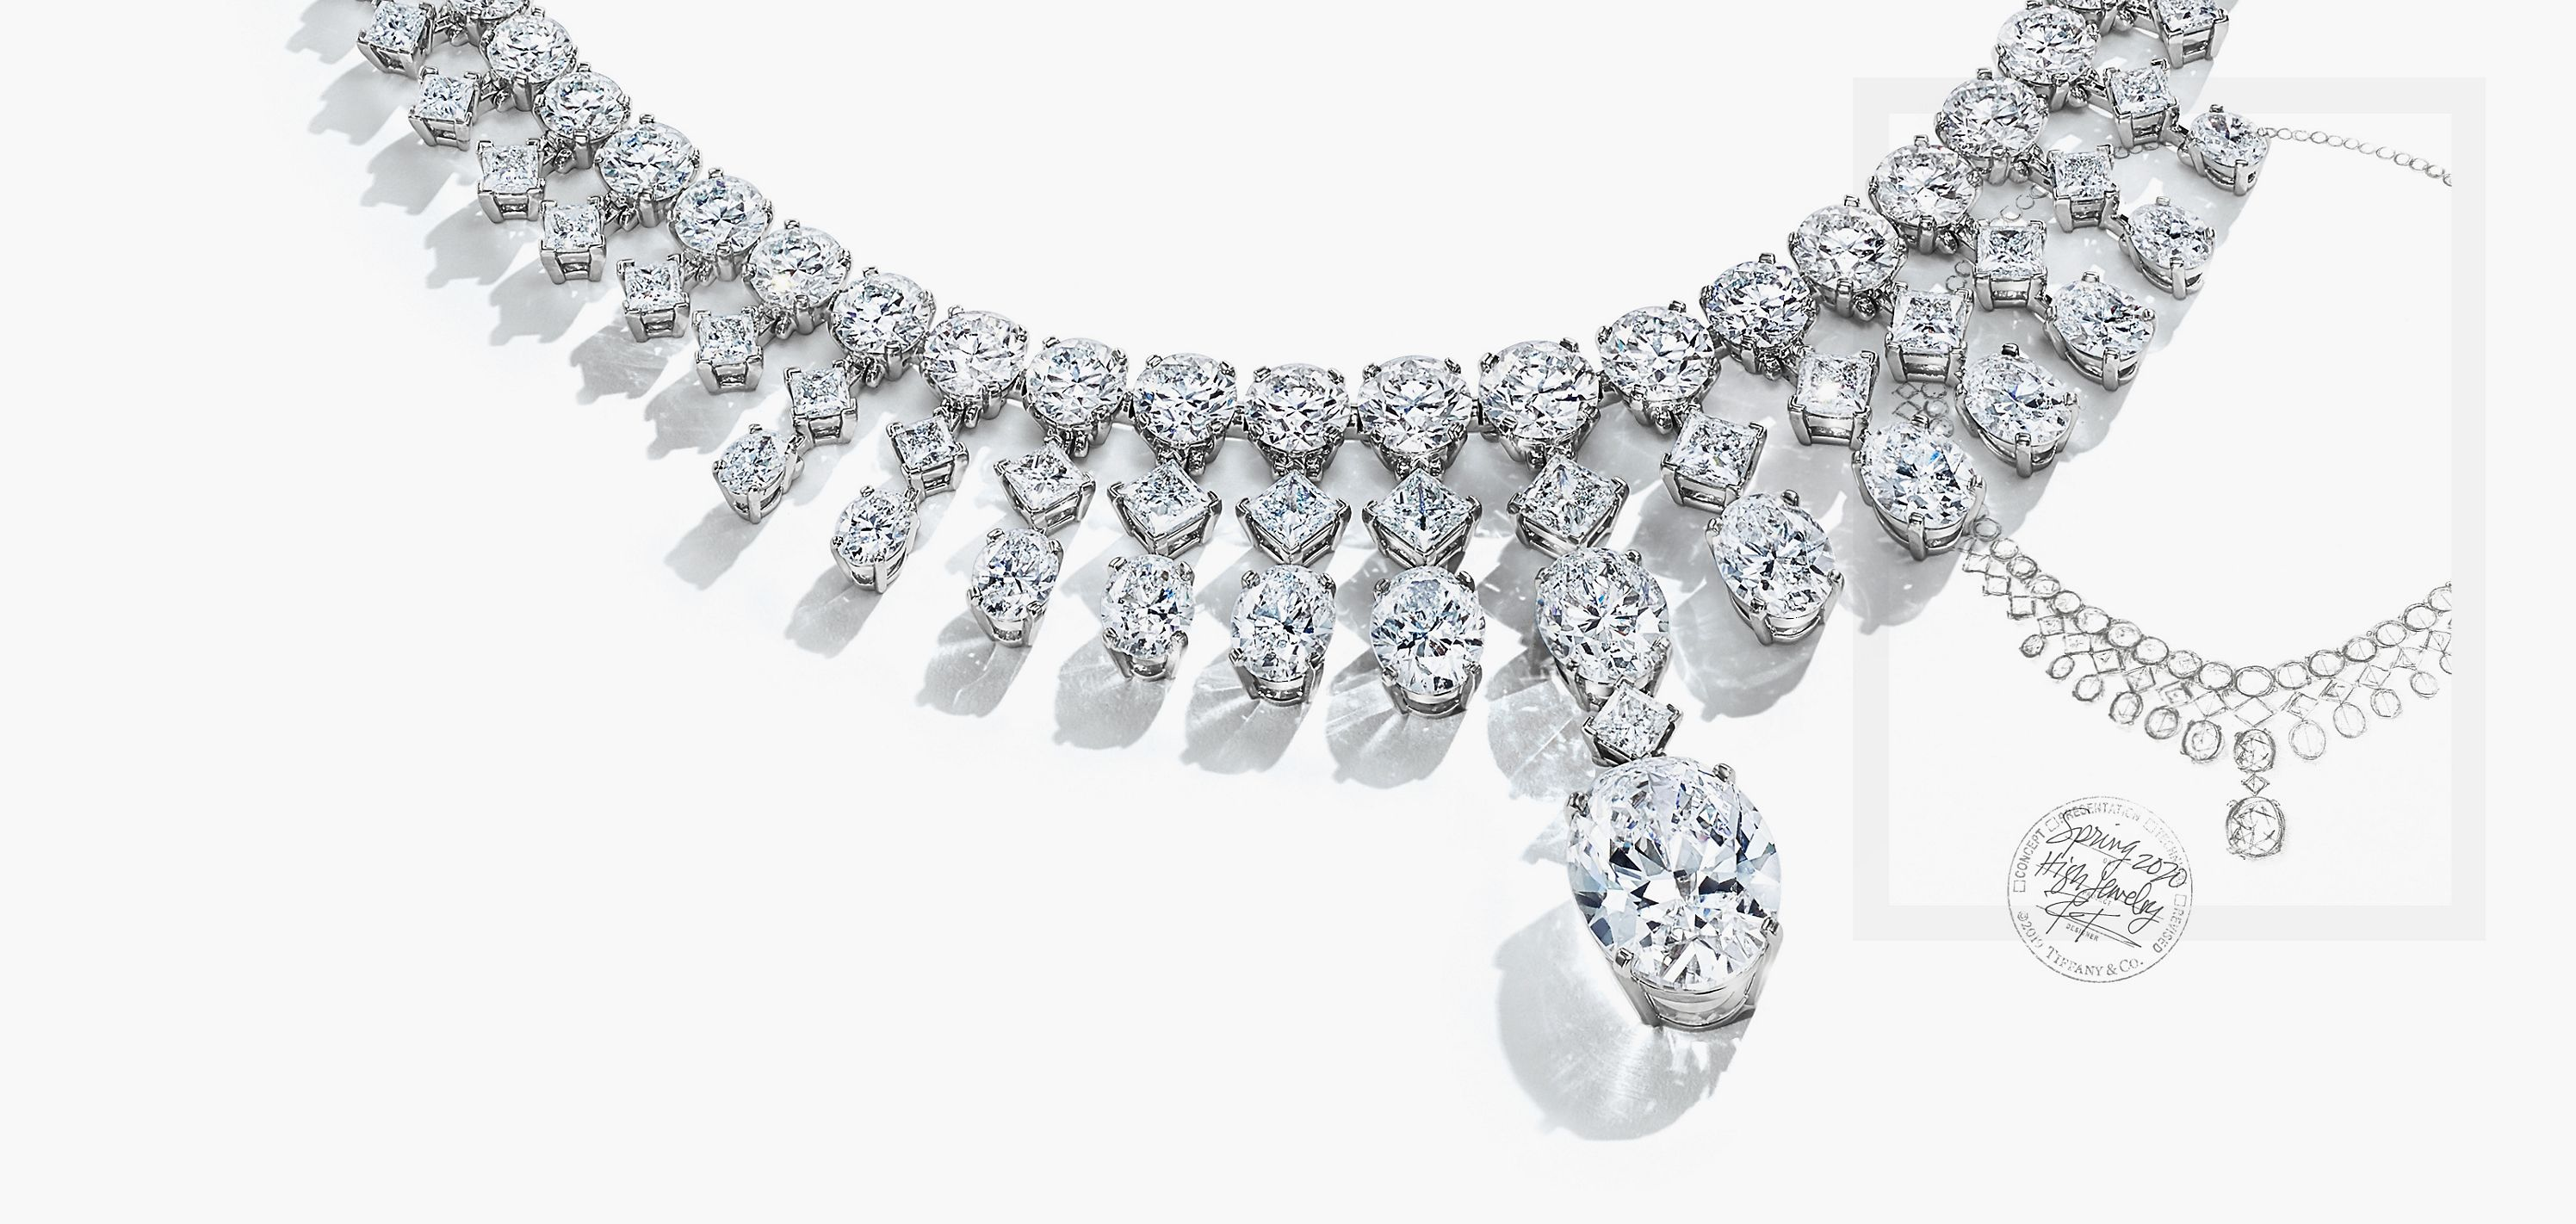 Tiffany Clara necklace with diamonds of over 65 total carats